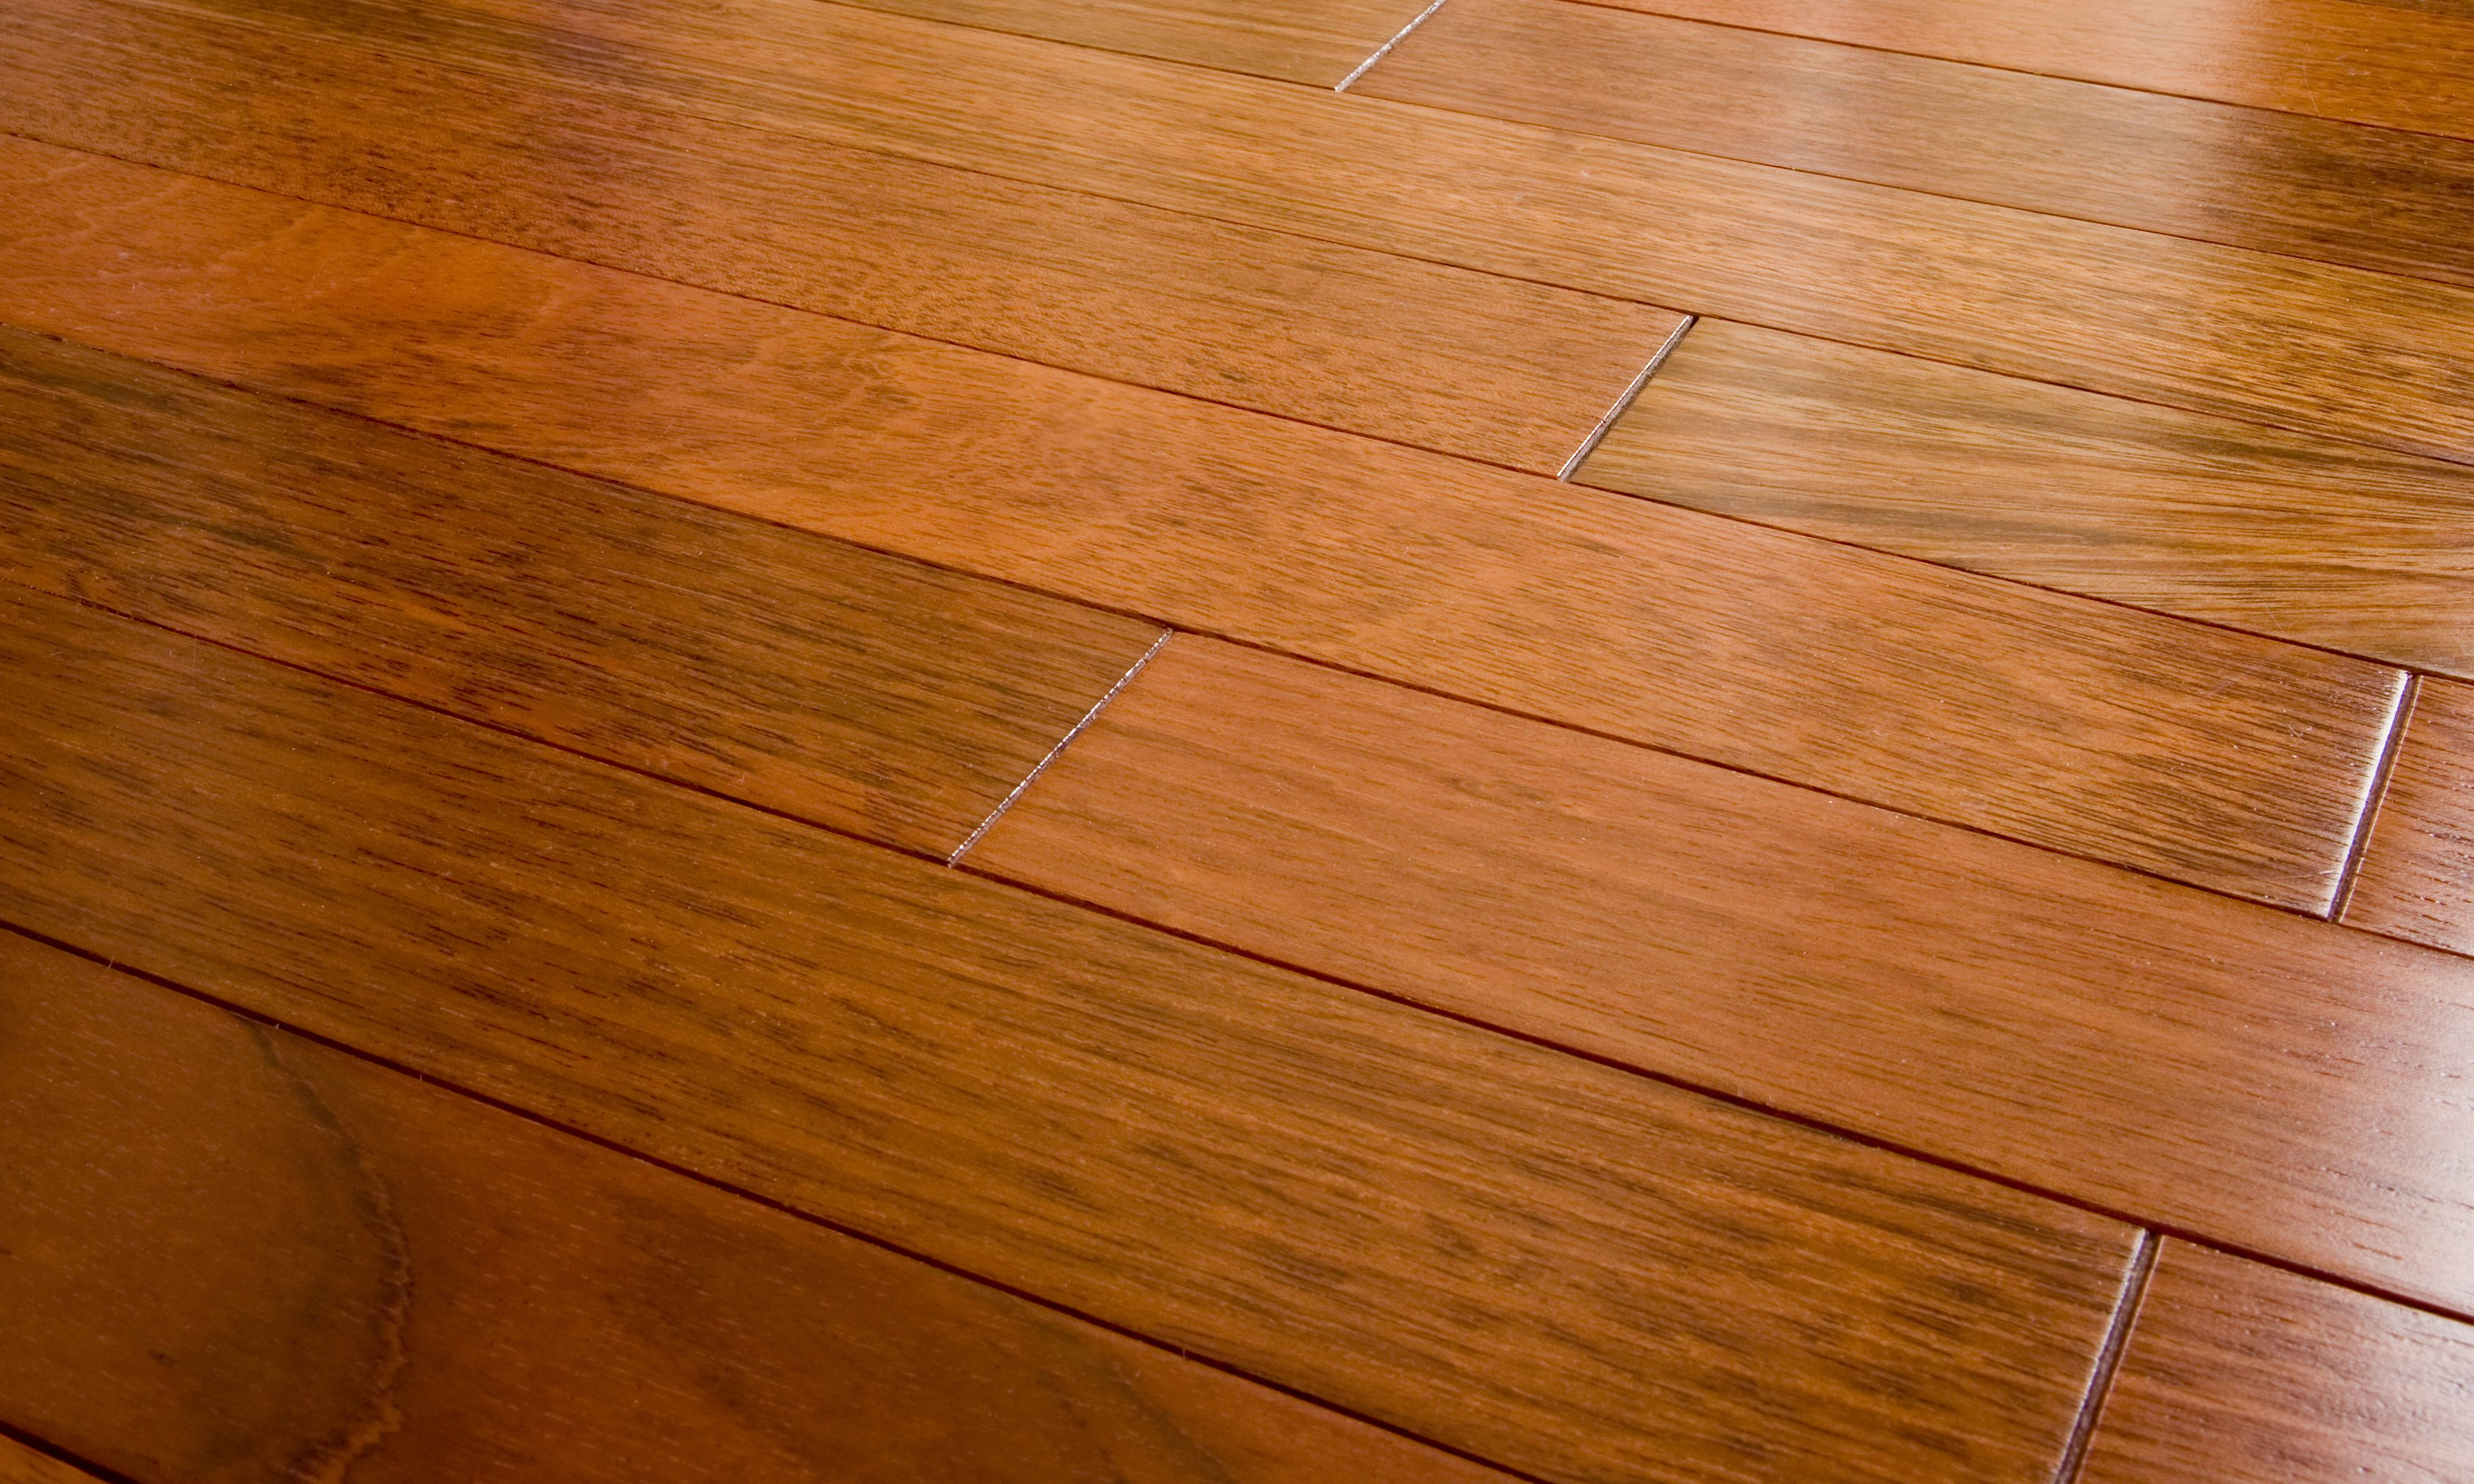 Why Throw Money Away To A Middle Man When You Can Deal Directly With The Installers And Still Have Access These Amazing Hardwood Lvt Lvp Floors